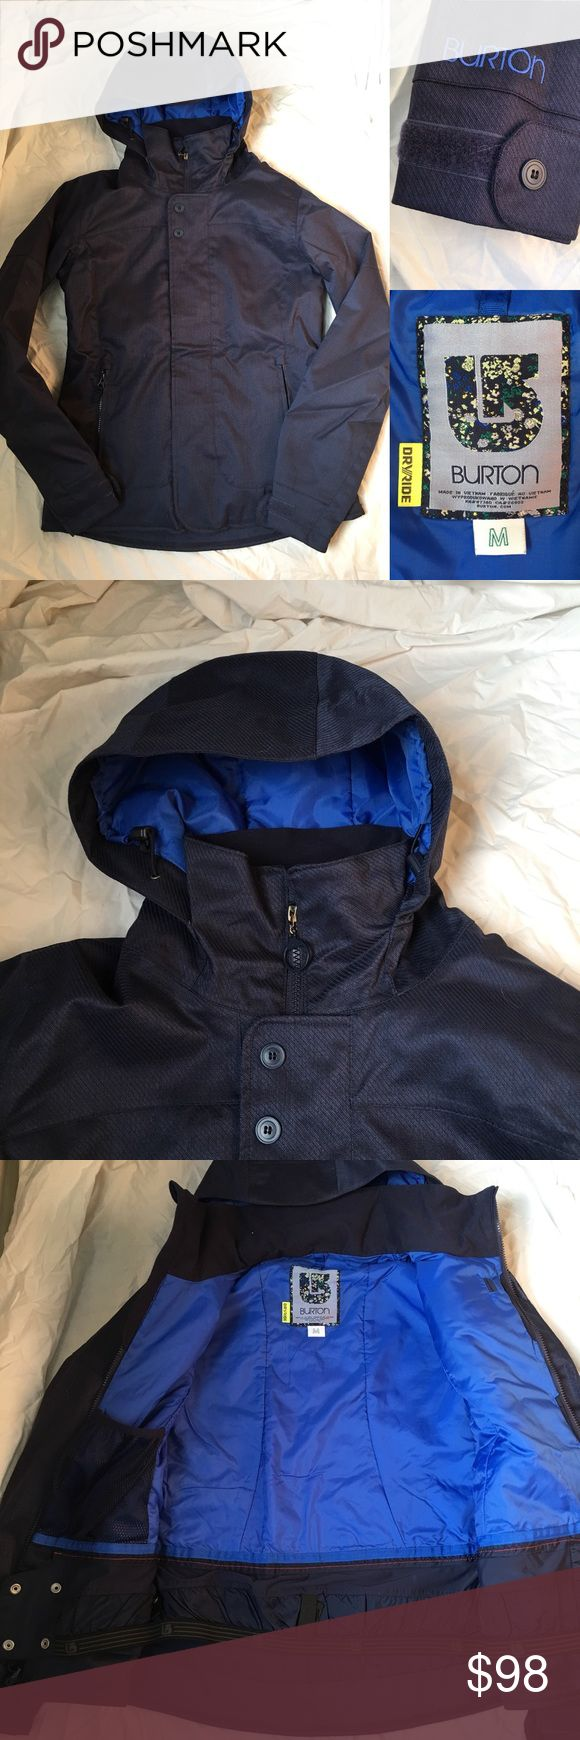 """EUC Burton Ski Snowboard Jacket I am unsure if the exact style name - but it's most similar to the """"Jet Set."""" Perfect like new condition, worn once. Burton Jackets & Coats"""